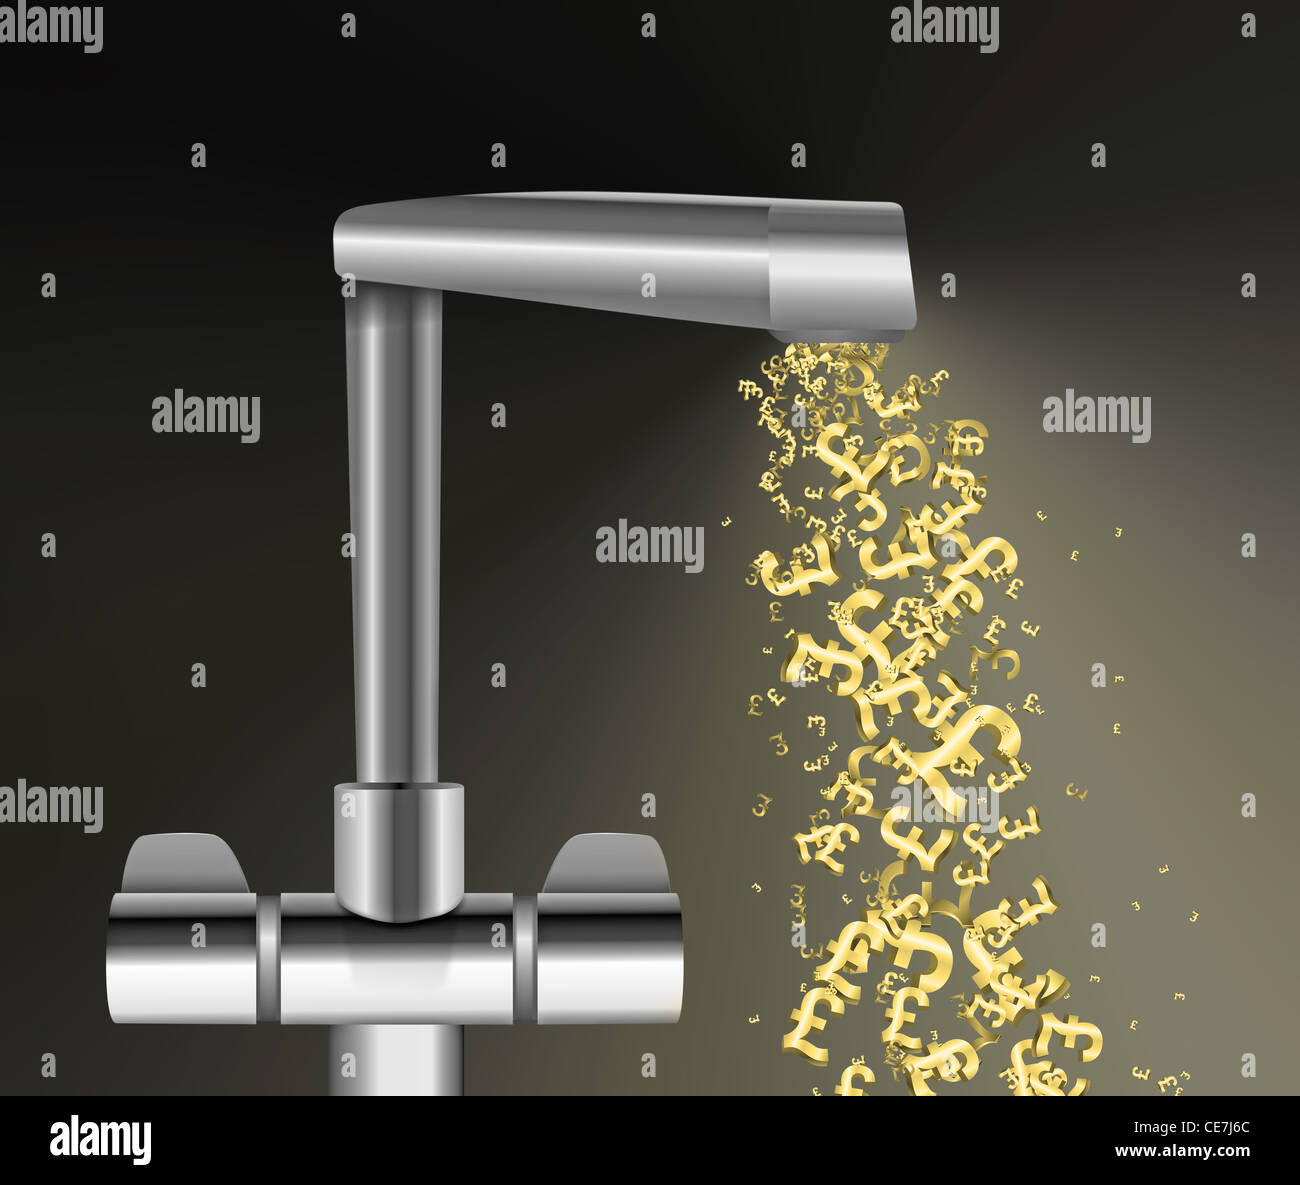 Illustration depicting a chrome water tap with metallic gold UK Pound Signs flowing from the spout against a dark Stock Photo